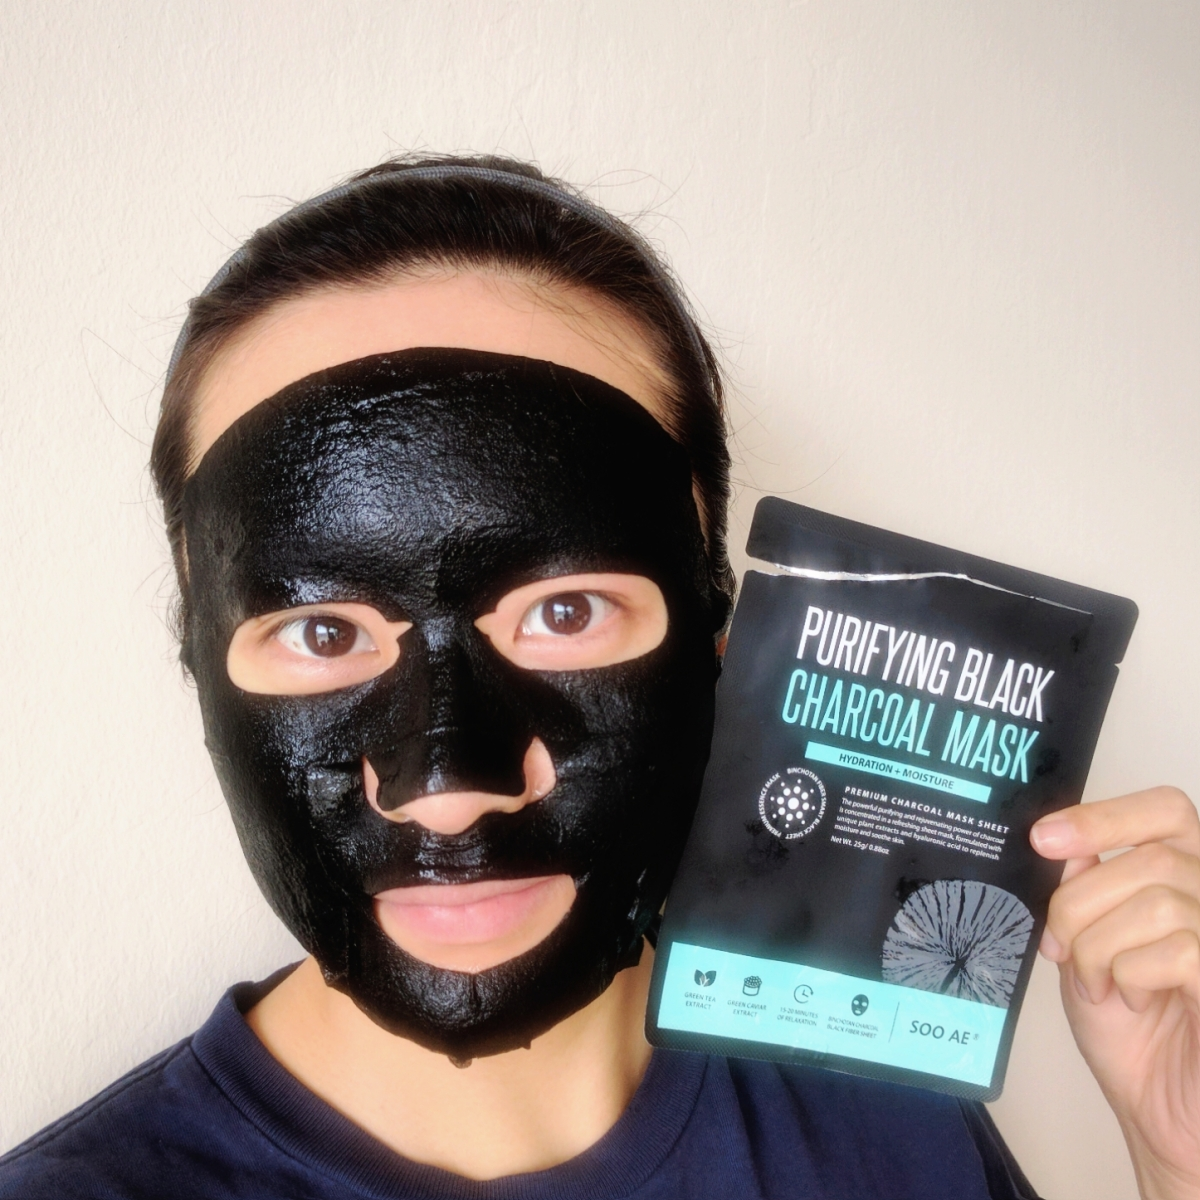 Review: Soo Ae Purifying Black Charcoal Mask ★★★★★